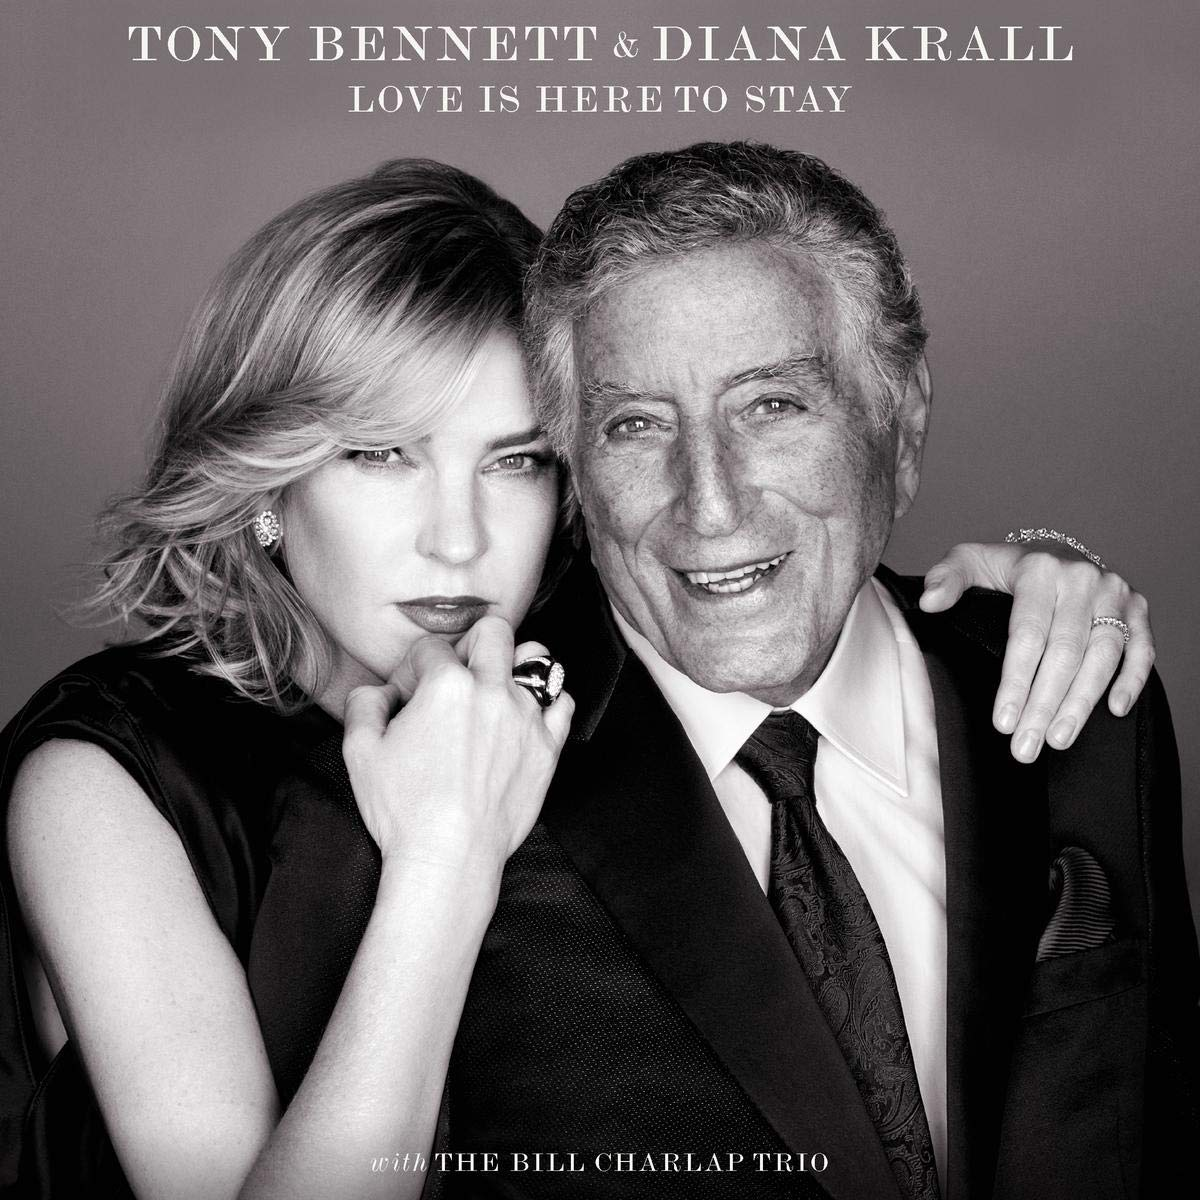 Дайана Кролл,Тони Беннетт,Bill Charlap Trio Tony Bennett & Diana Krall With The Bill Charlap Trio. Love Is Here To Stay the one that got away